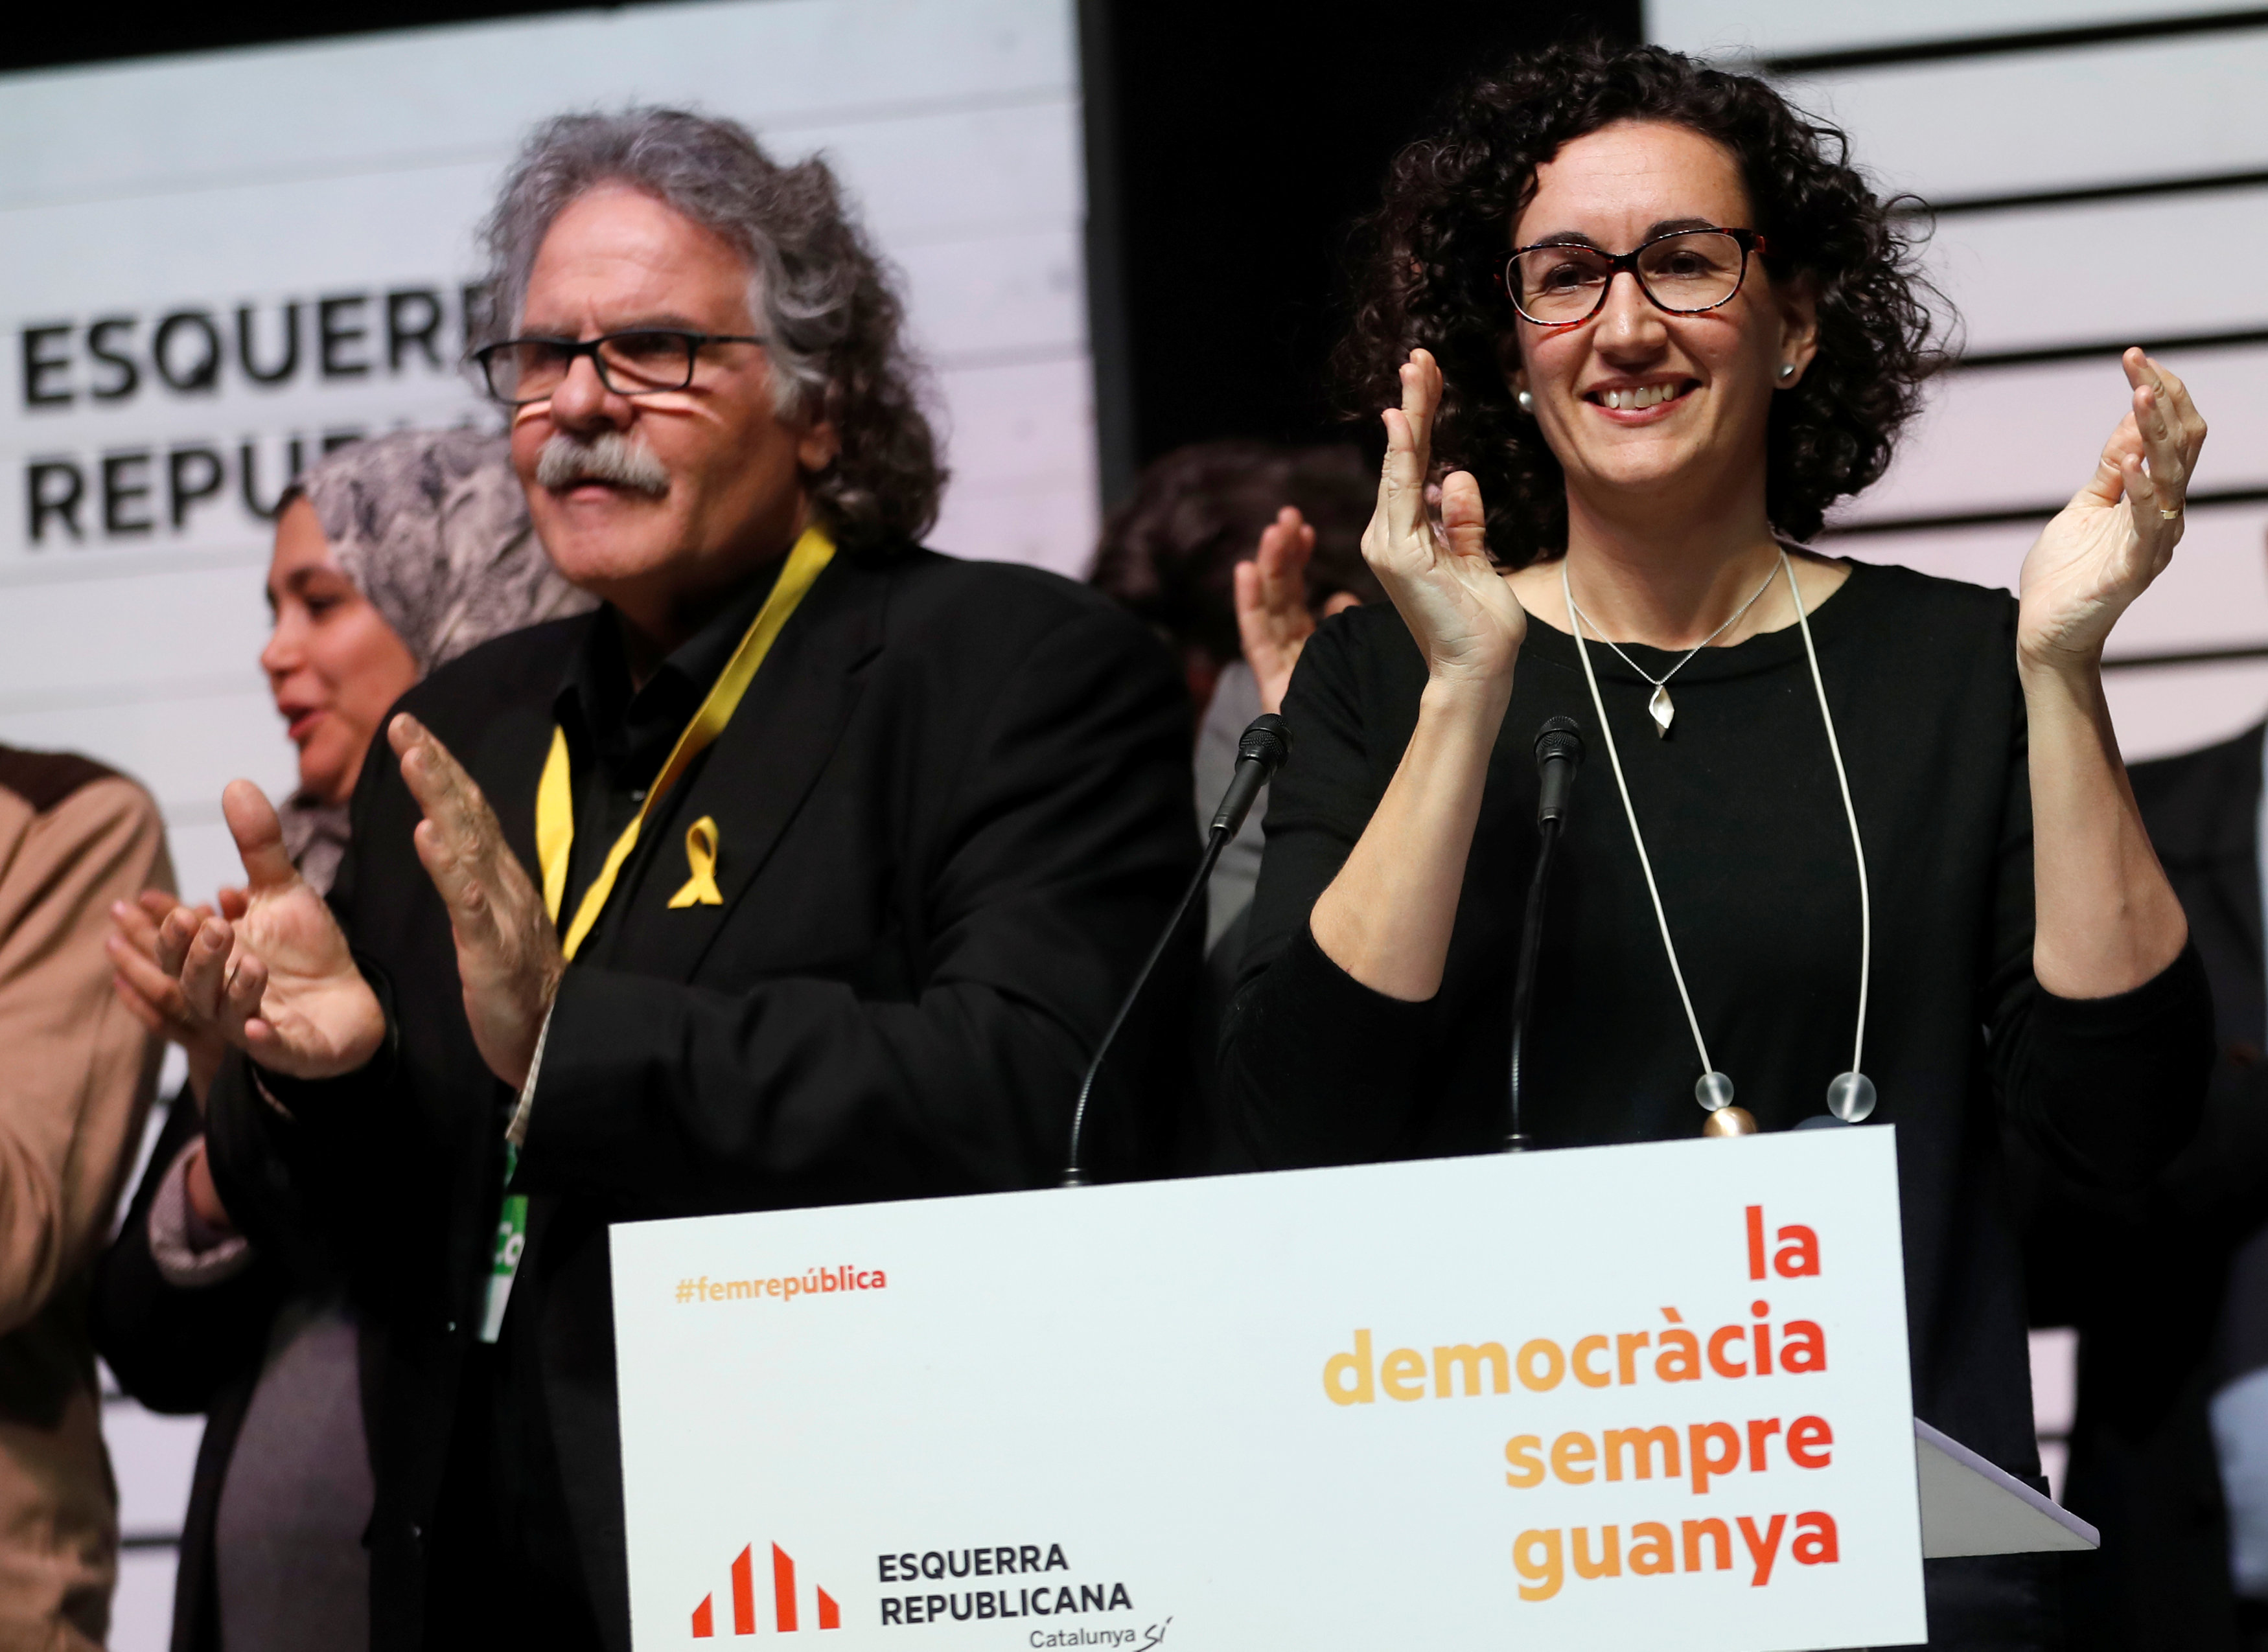 Catalan Separatists Win Election in Rebuke to Spain and EU